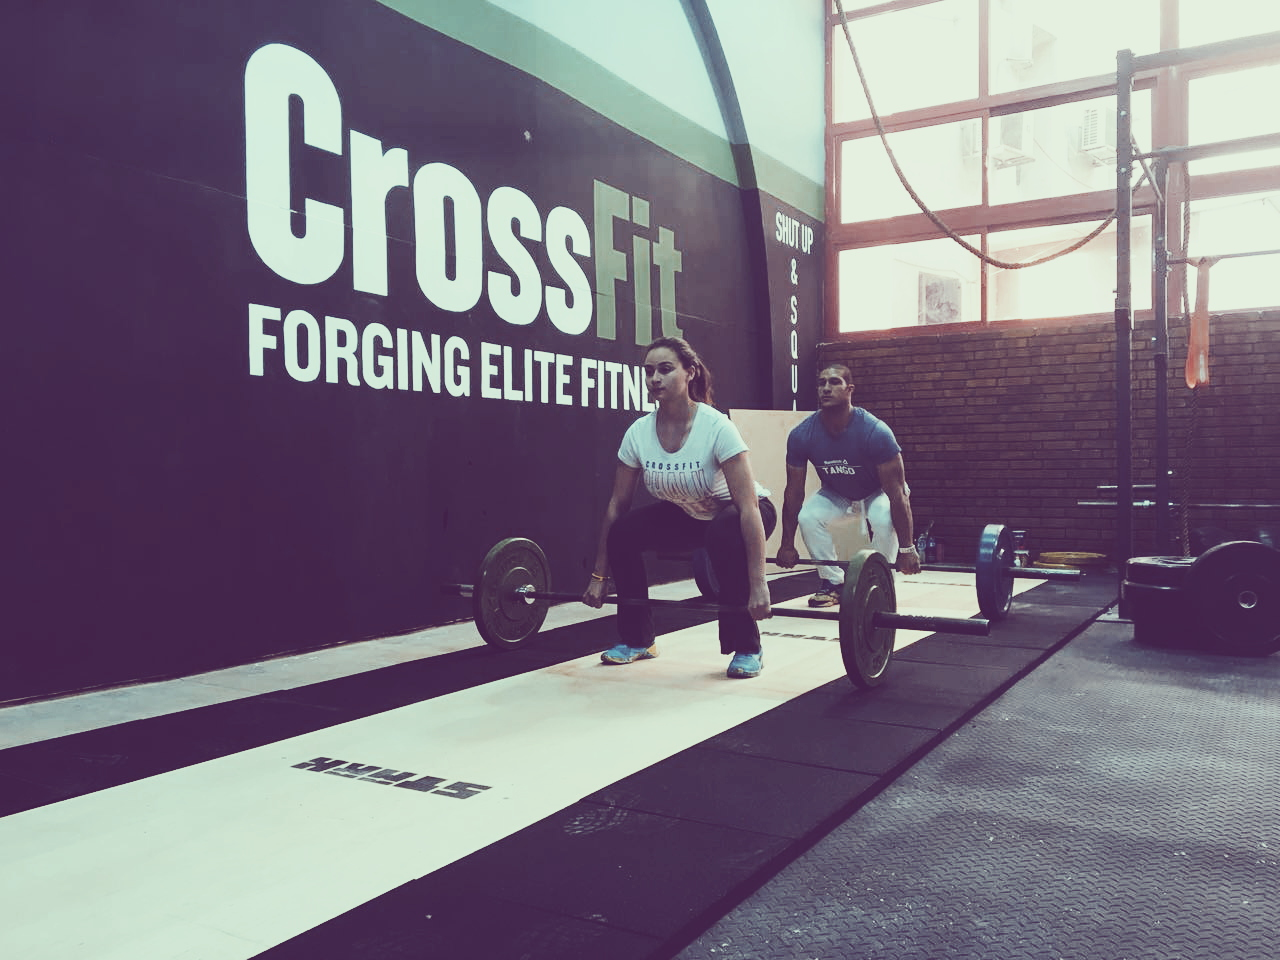 Nahdeen Hassanain: How Lifting Weight Taught Me That Feminine and Strong Do Coexist